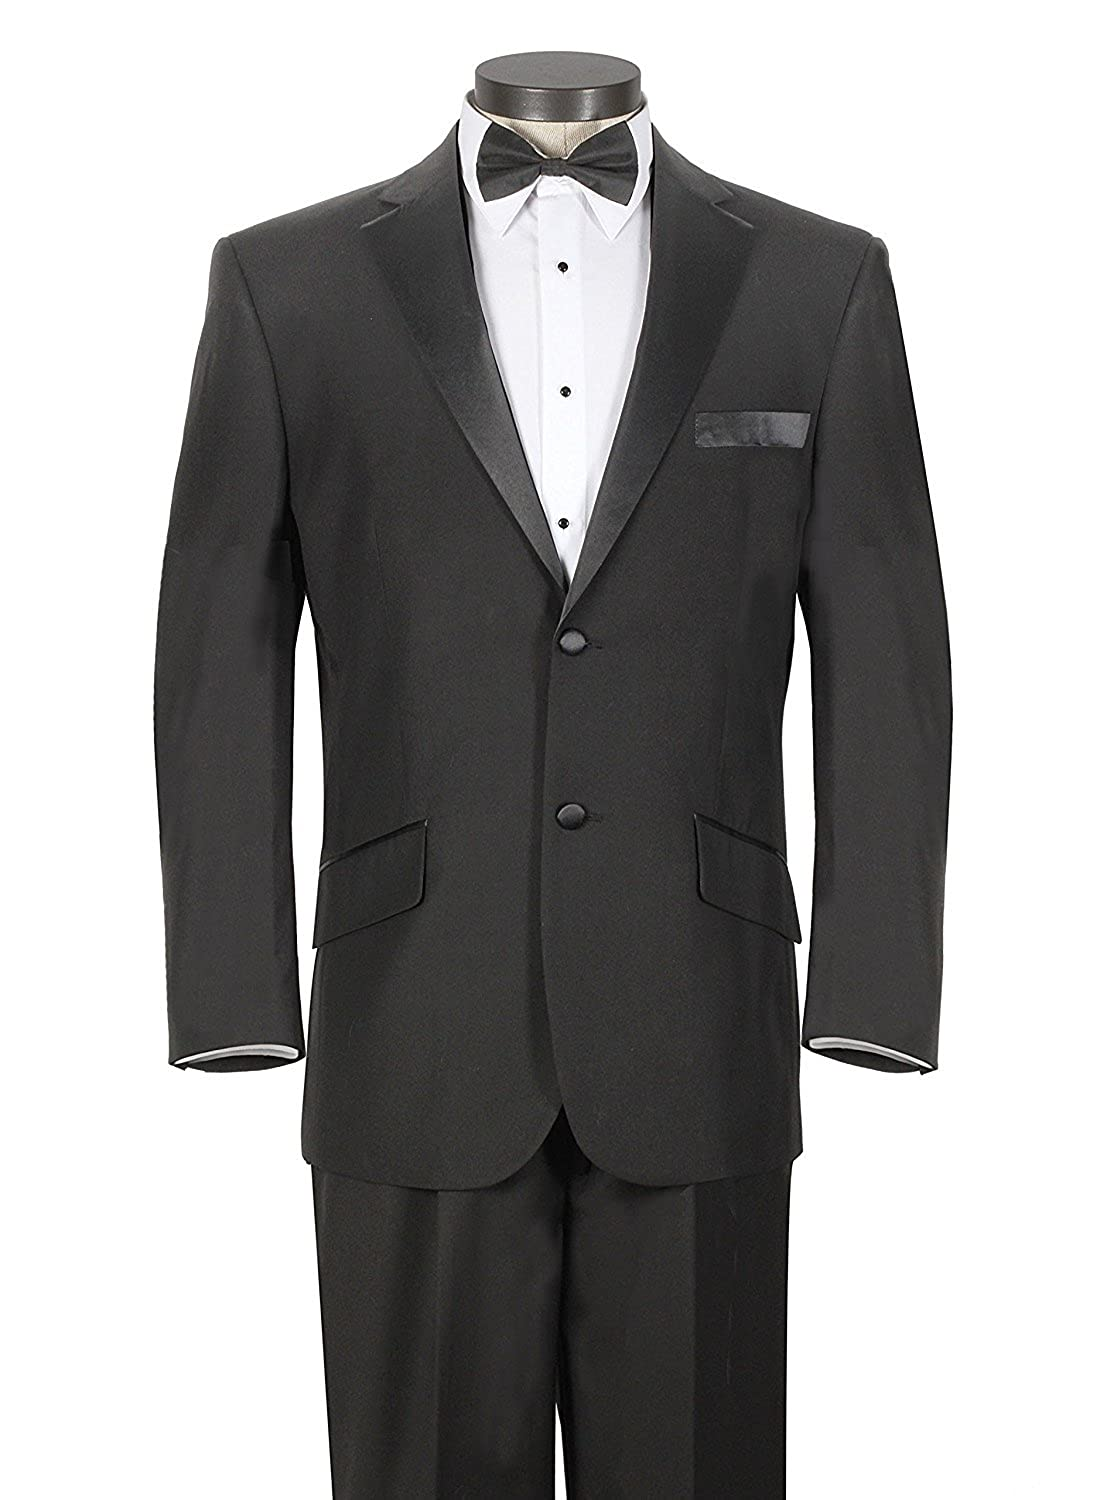 Fitty Lell Mens Suit Two Buttons Blazer Formal Suit 2 Piece Tuxedo Suit